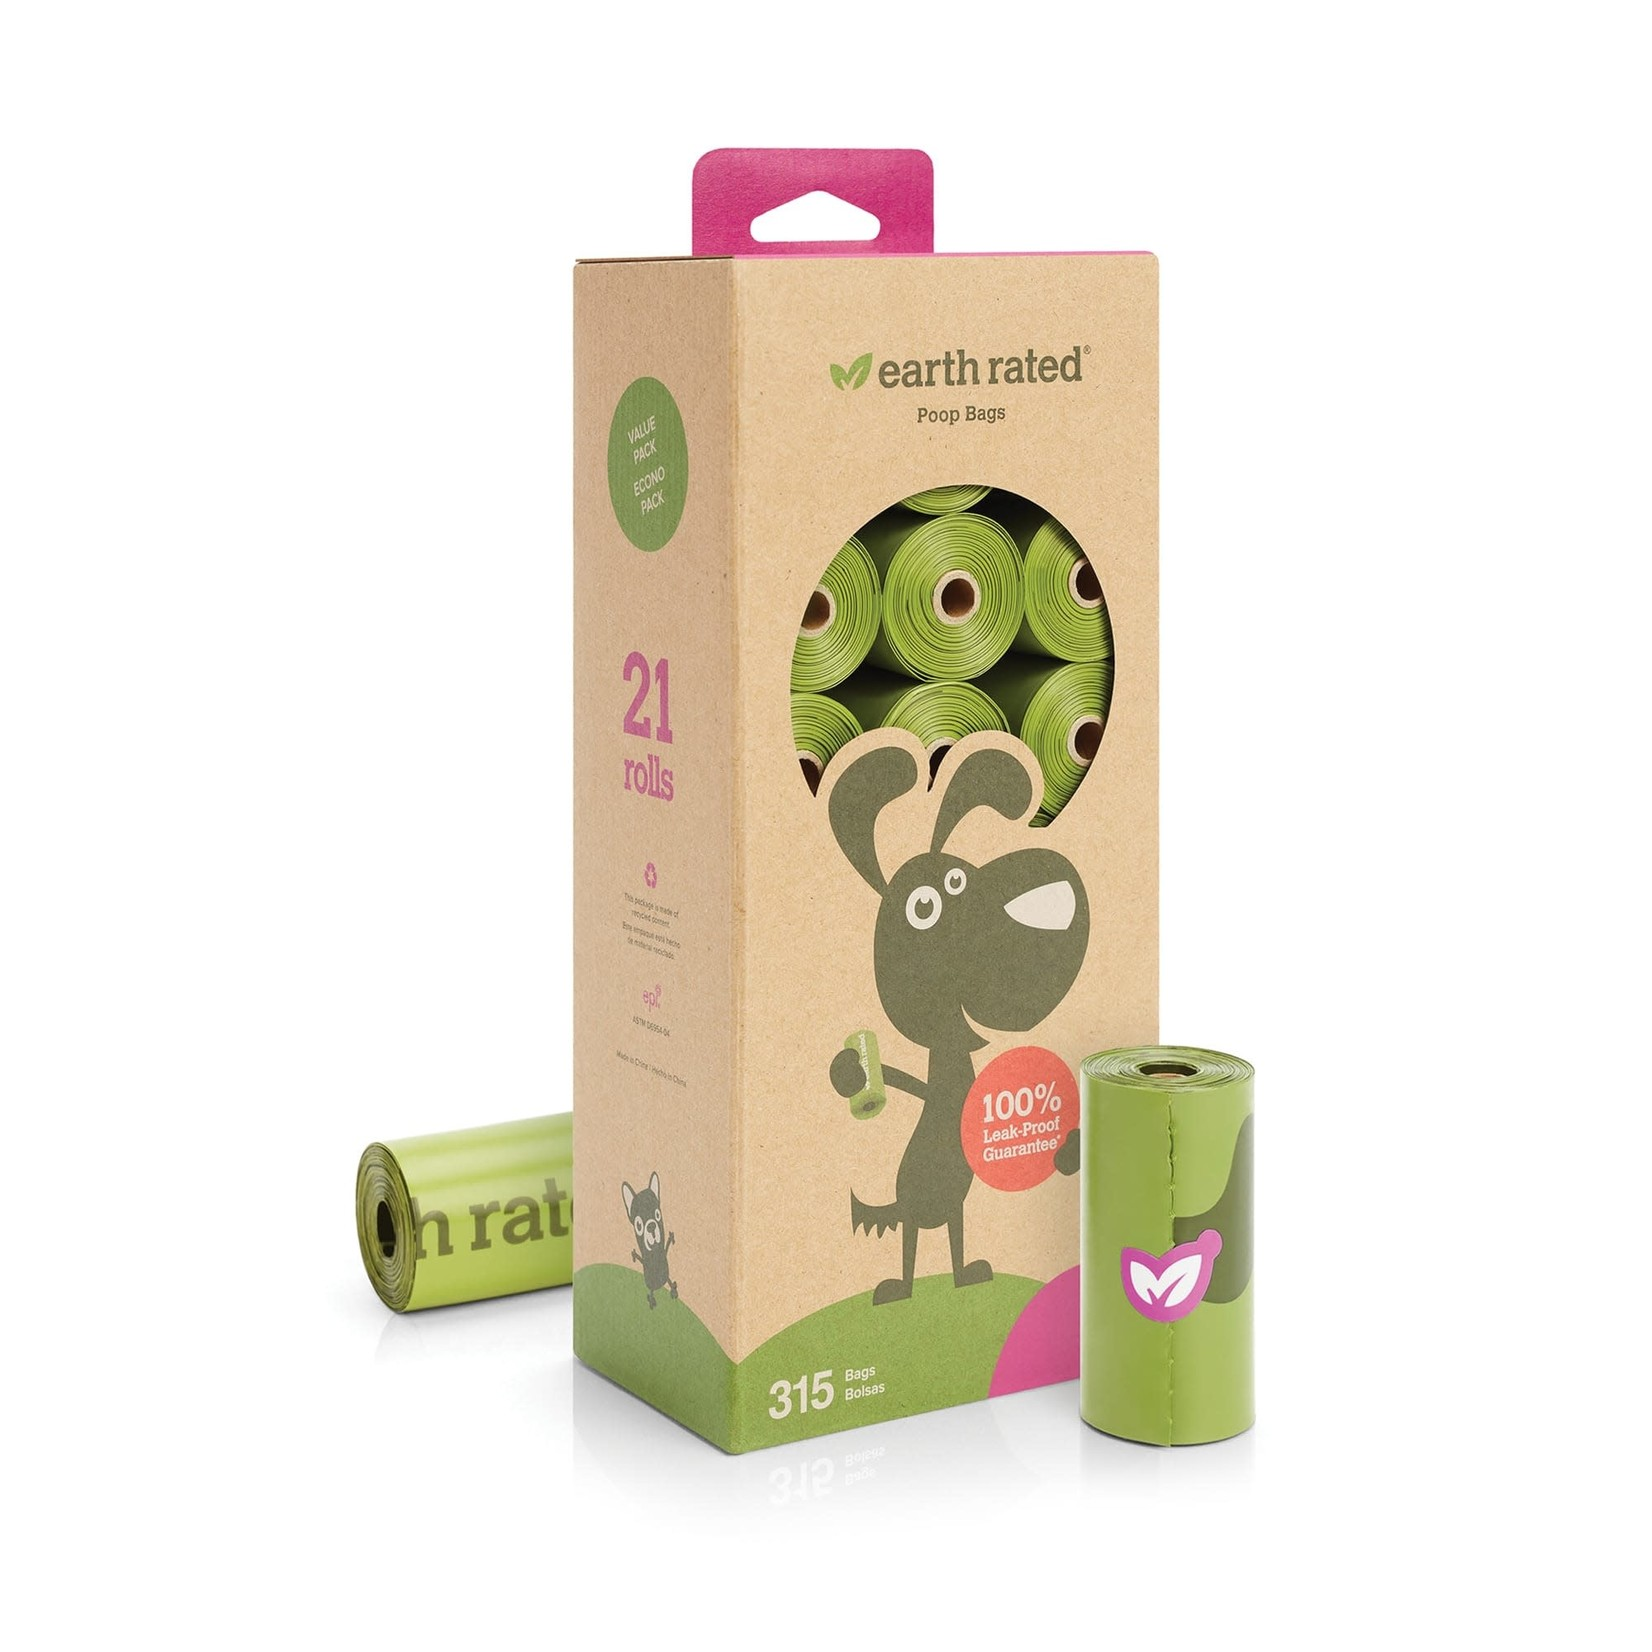 Earth Rated Earth Rated Bio Poop Bag Rolls Lavender 21 Pack